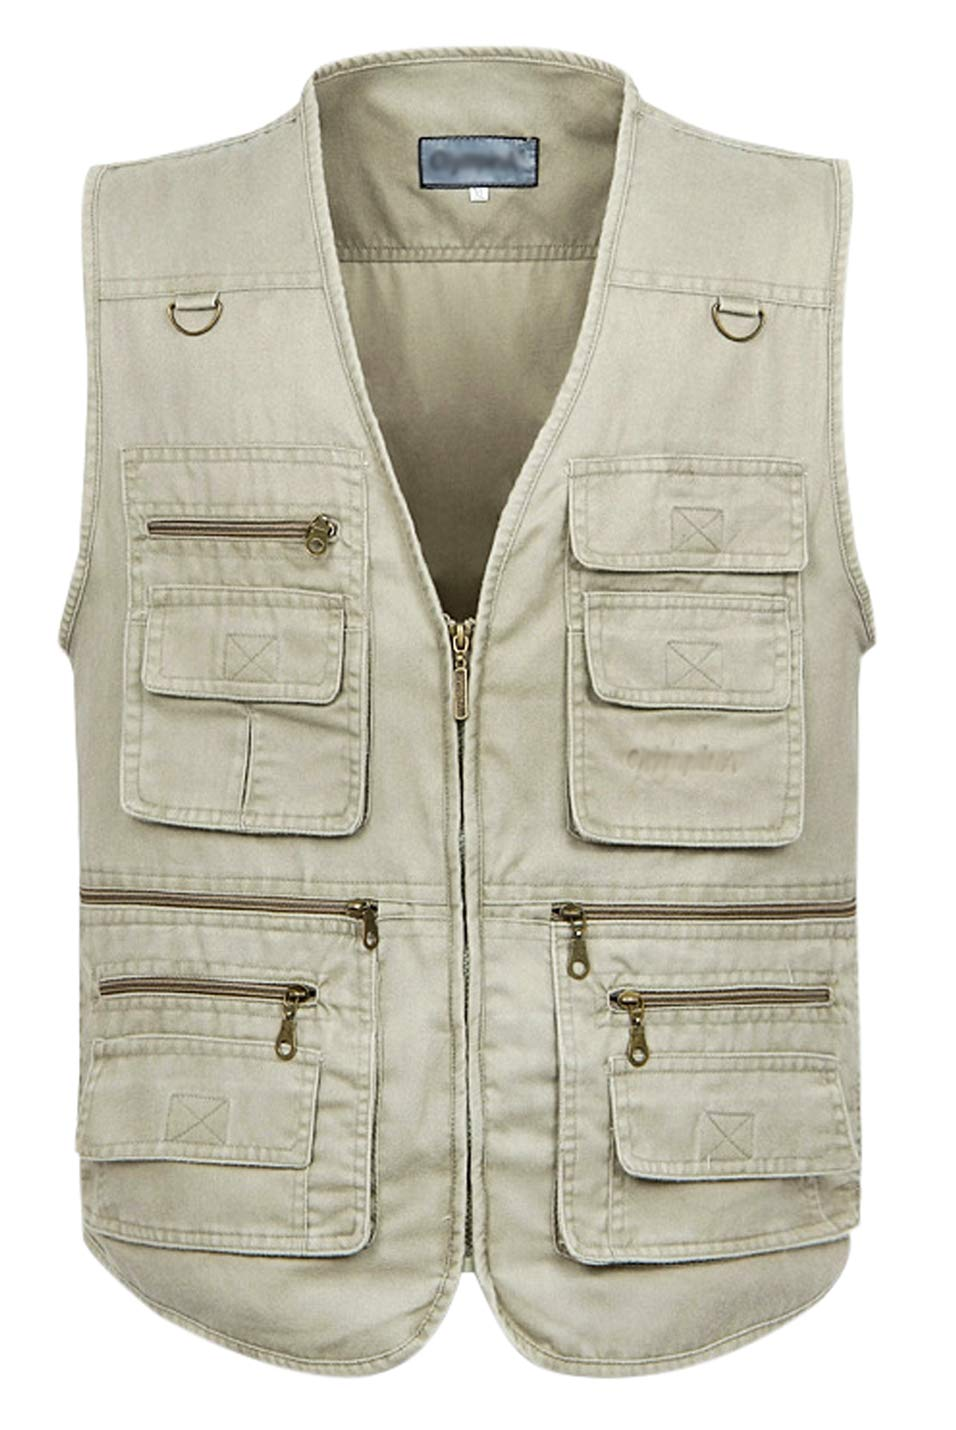 Gihuo Men's Casual Outdoor Work Pockets Fishing Photo Journalist Denim Vest (XXX-Large, Beige) by Gihuo